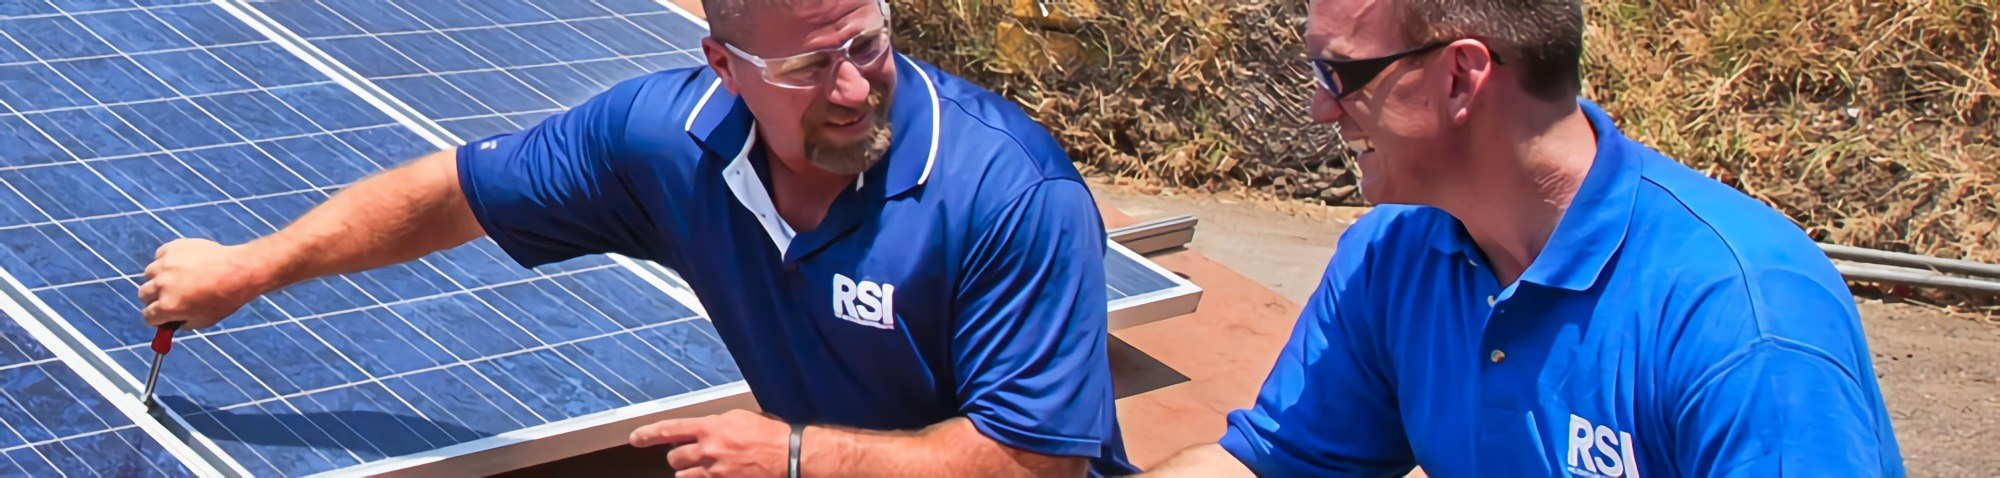 RSI Refrigeration School Training Equipment Solar